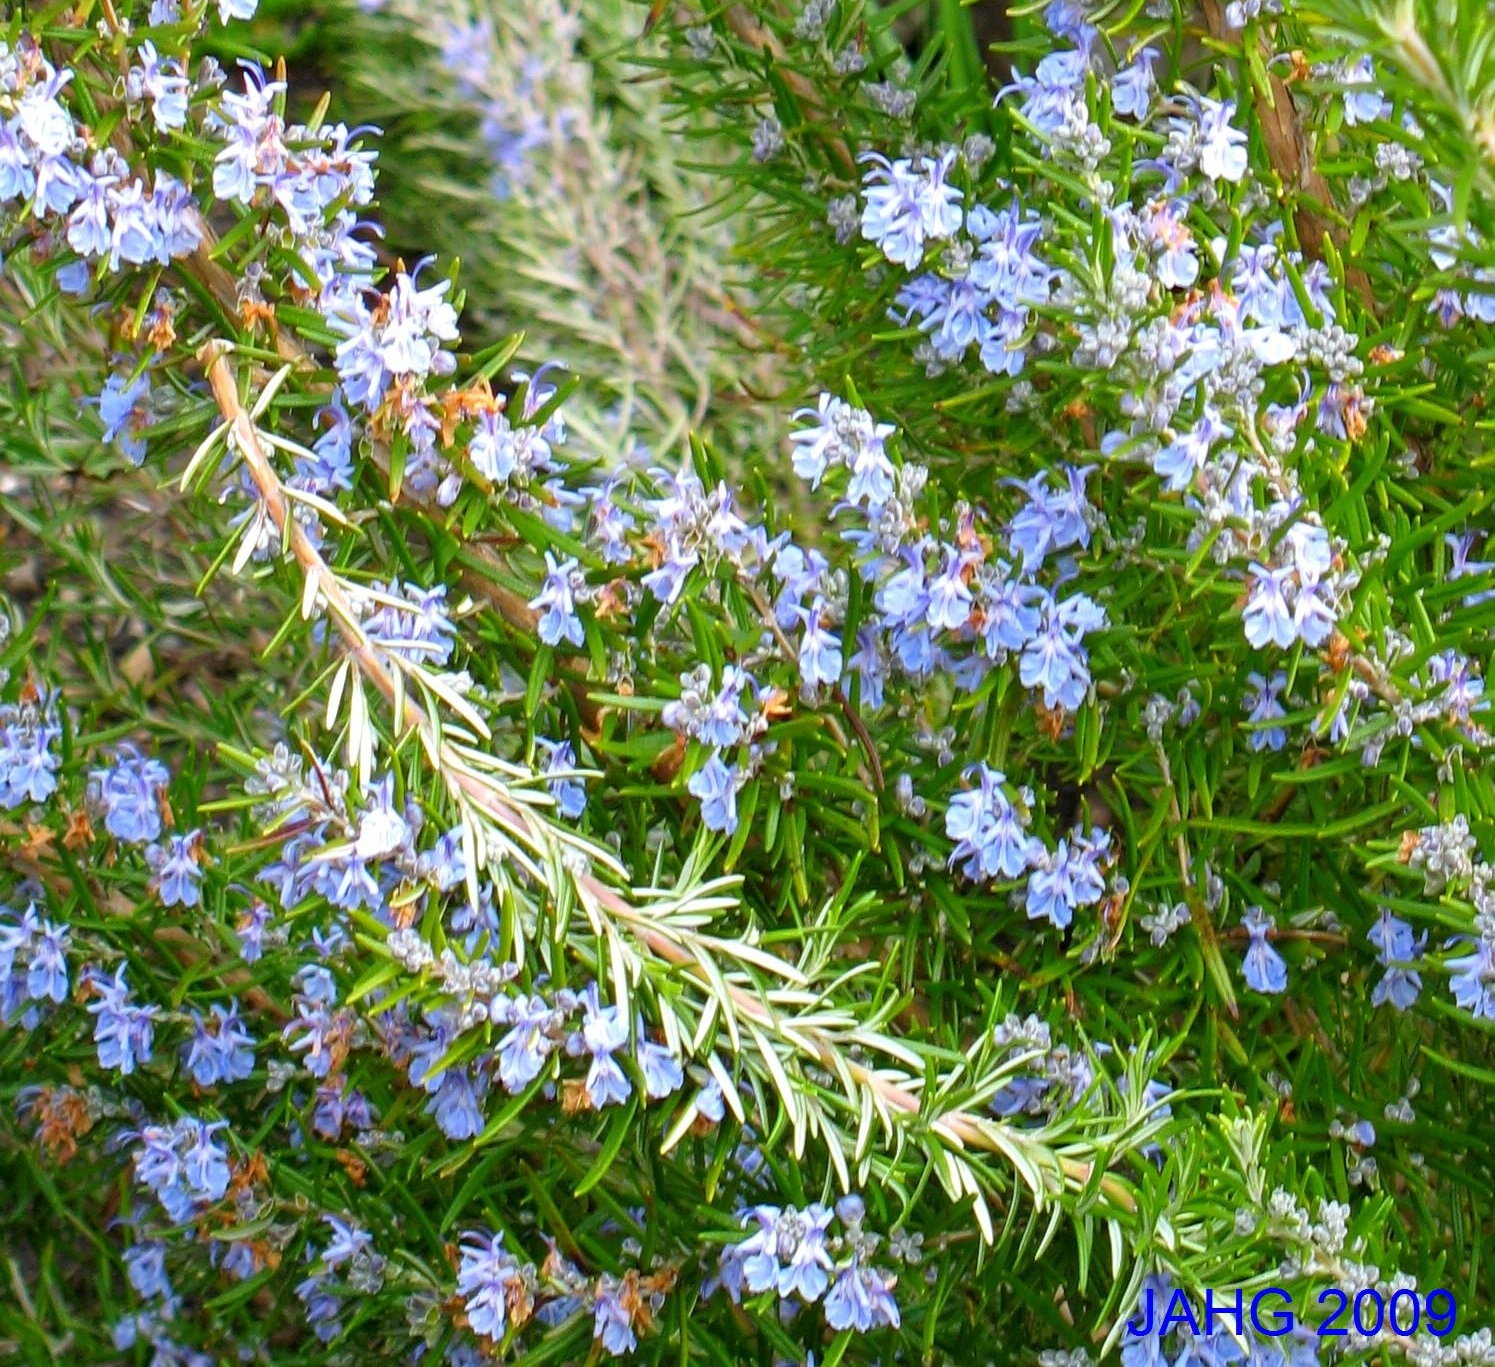 Rosemary Has Very Fine Foliage, Perfect for Cooking With.